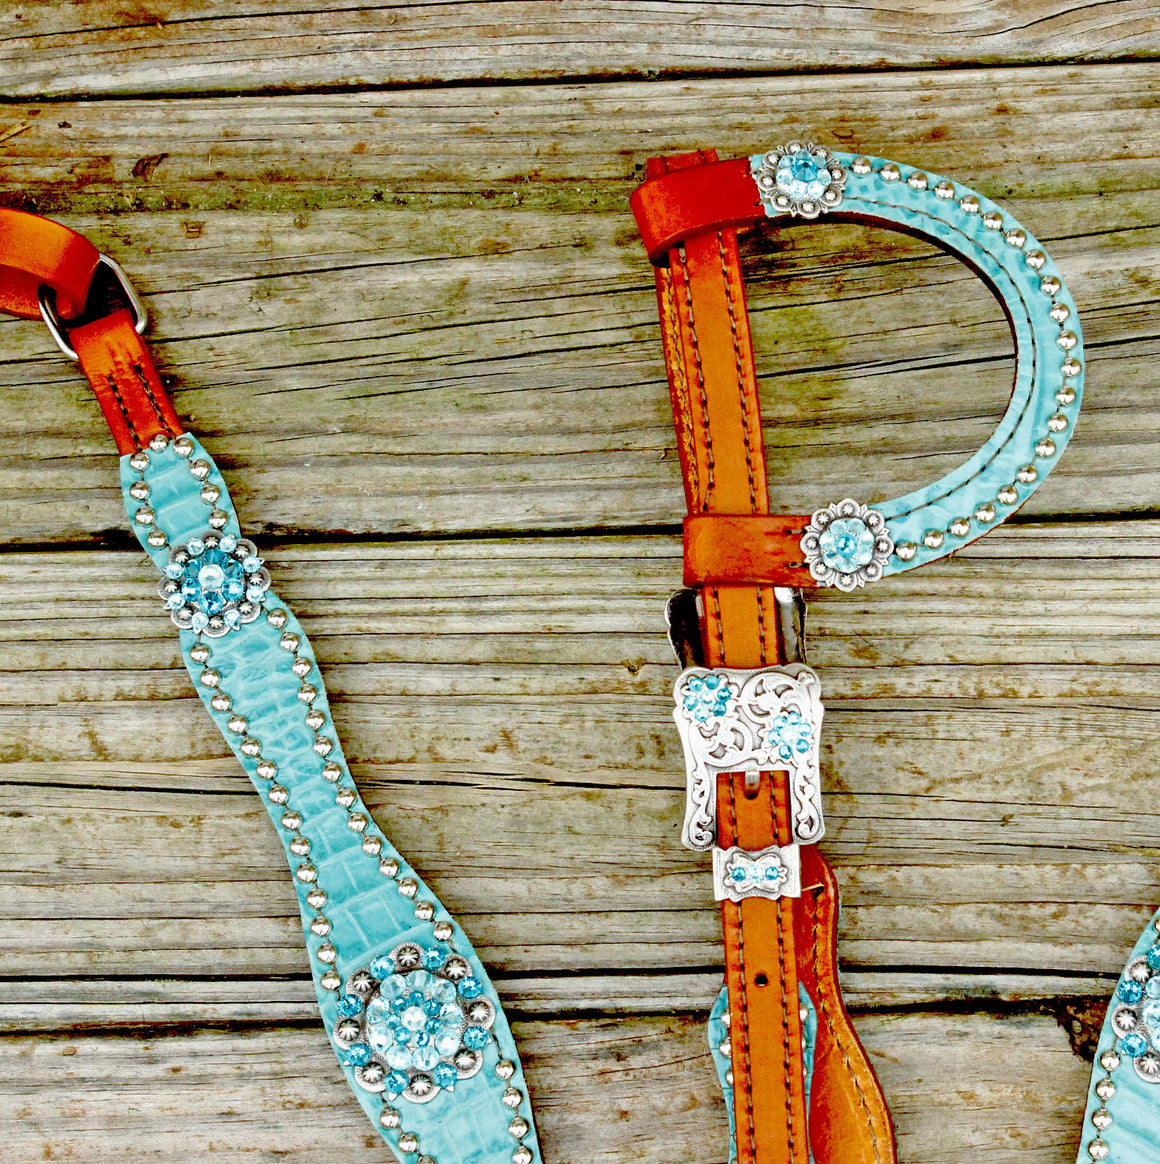 Teal Gator/Tan Leather One Ear Tack Set w/Teal & Turquoise Crystal Rhinestone Conchos